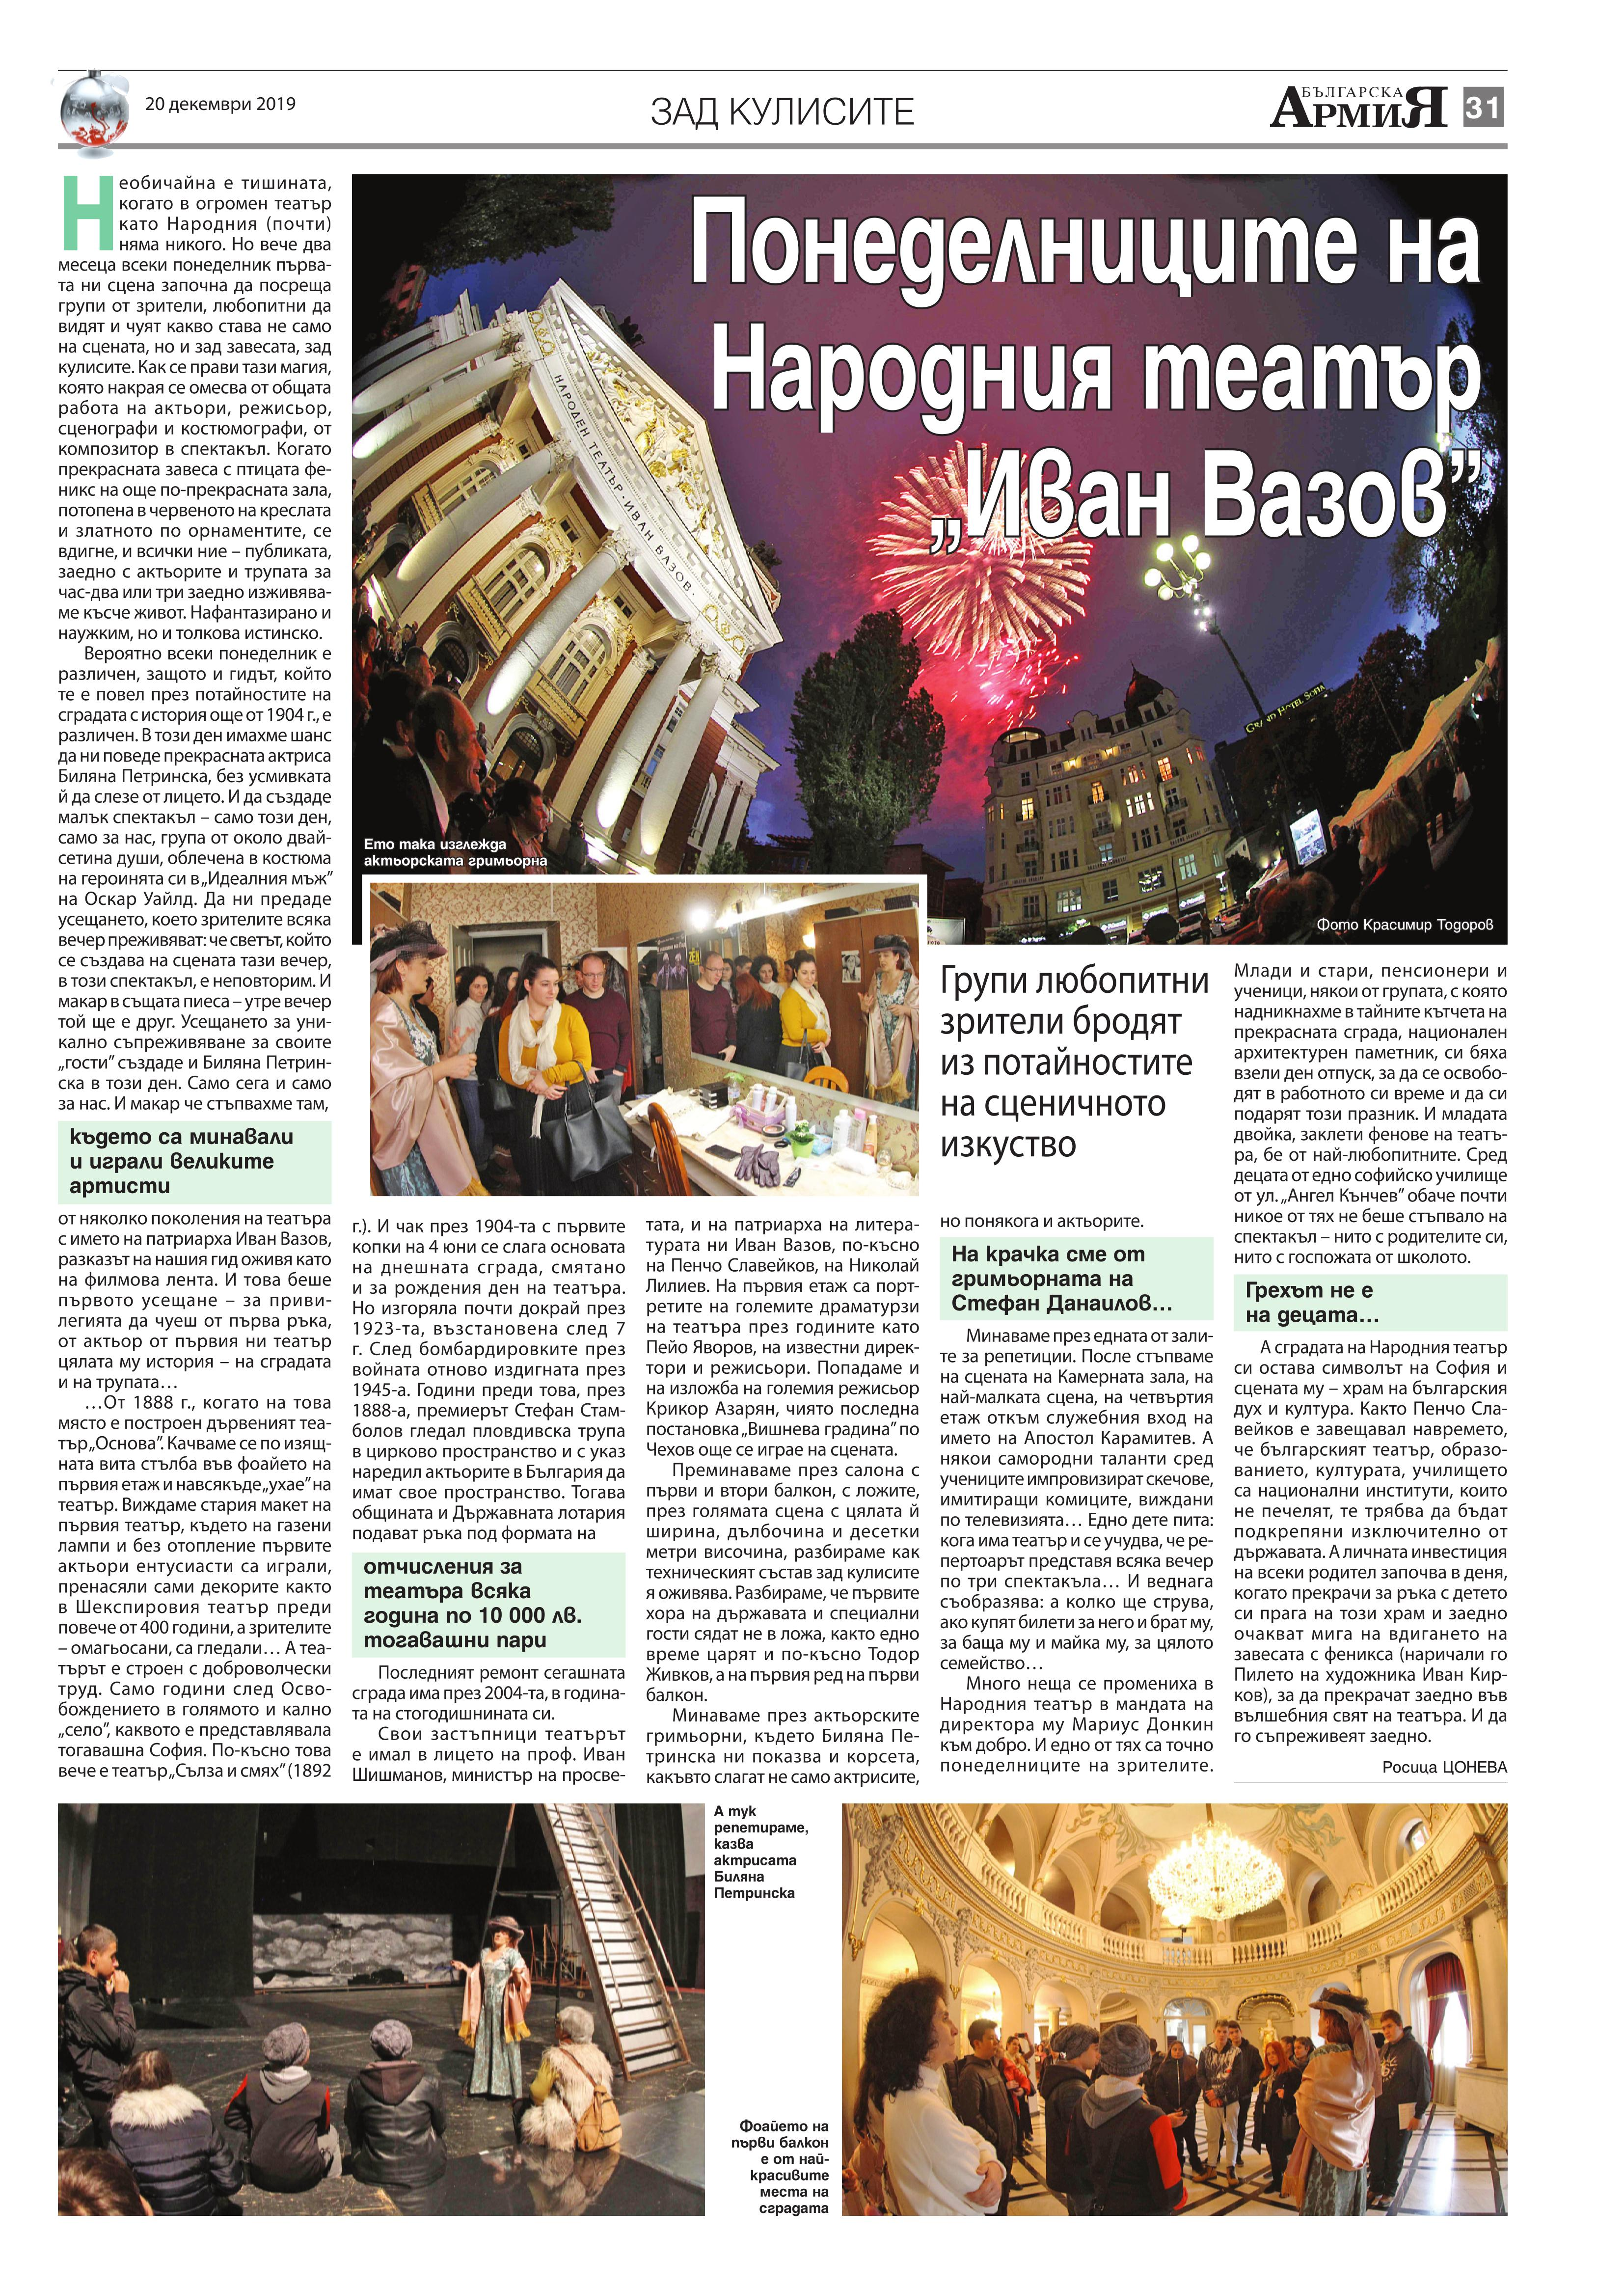 https://armymedia.bg/wp-content/uploads/2015/06/31.page1_-102.jpg